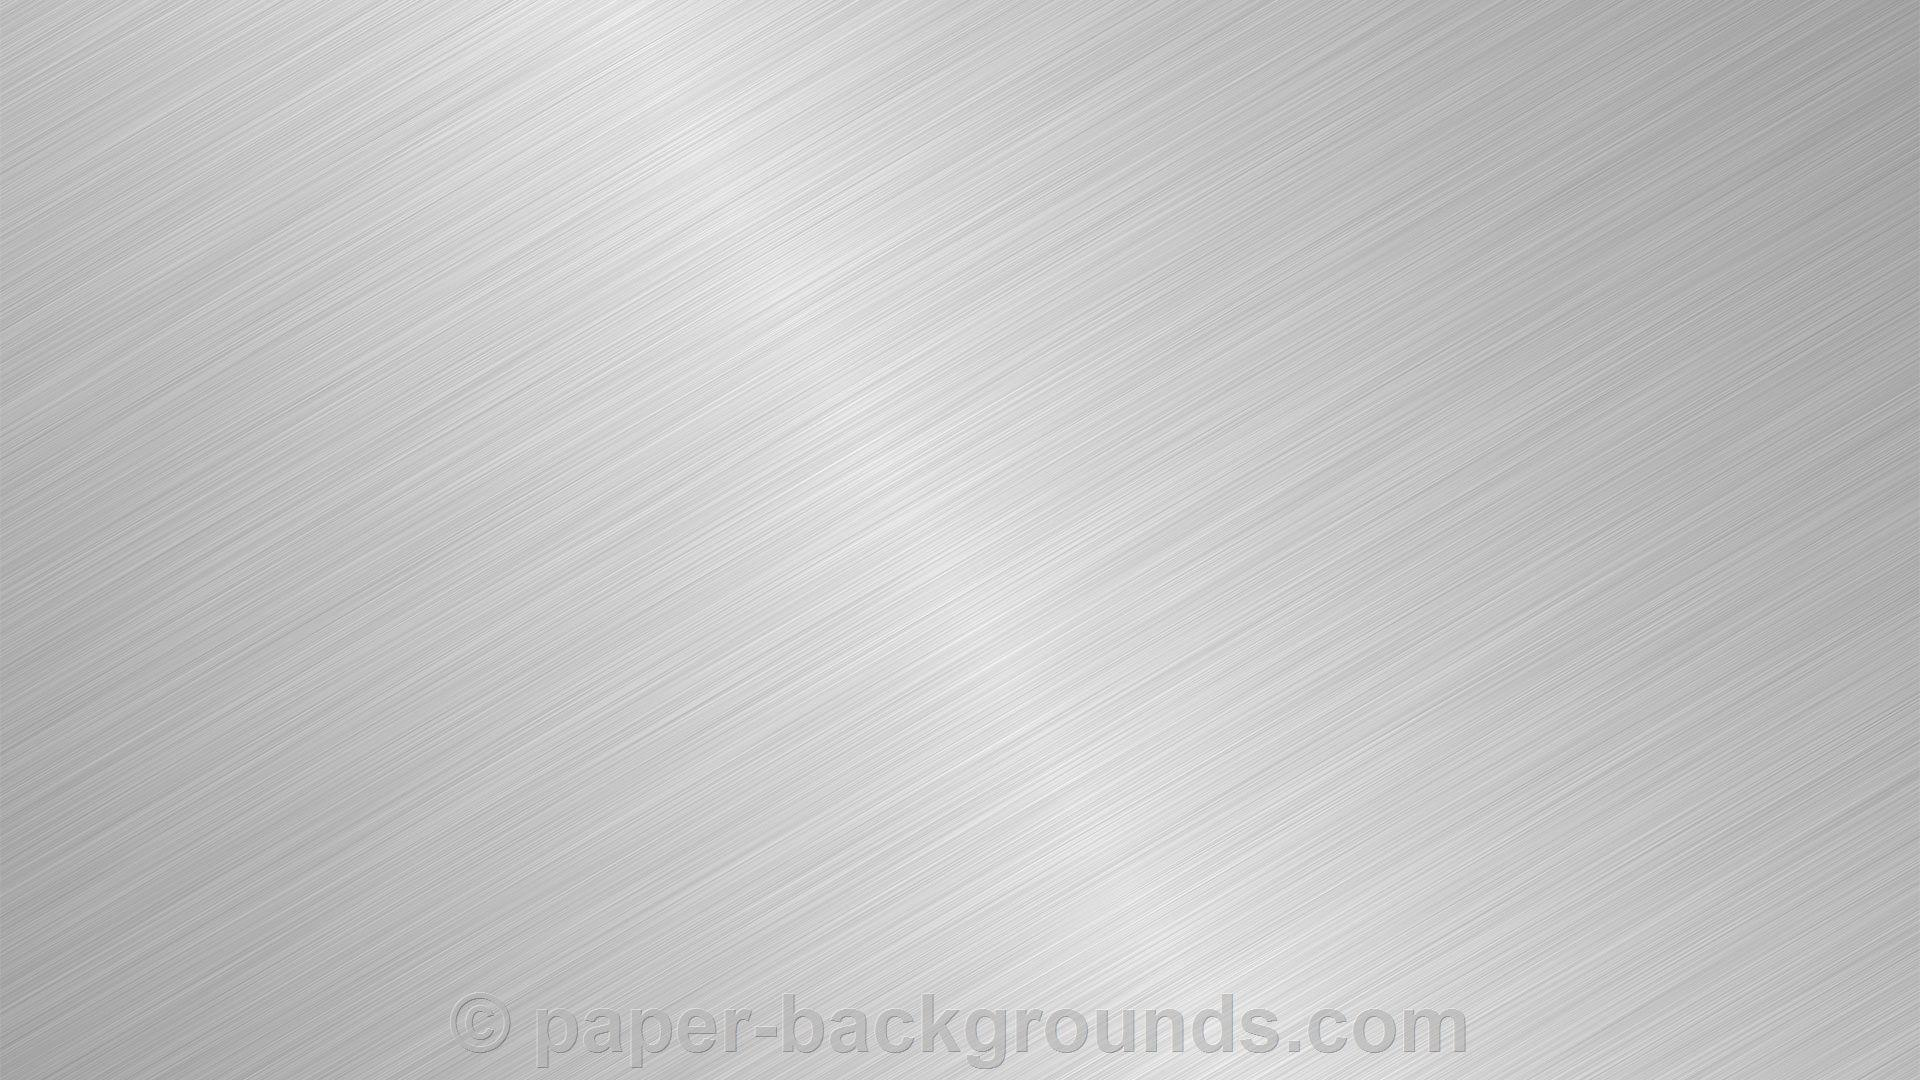 brushed stainless steel wallpaper - photo #7